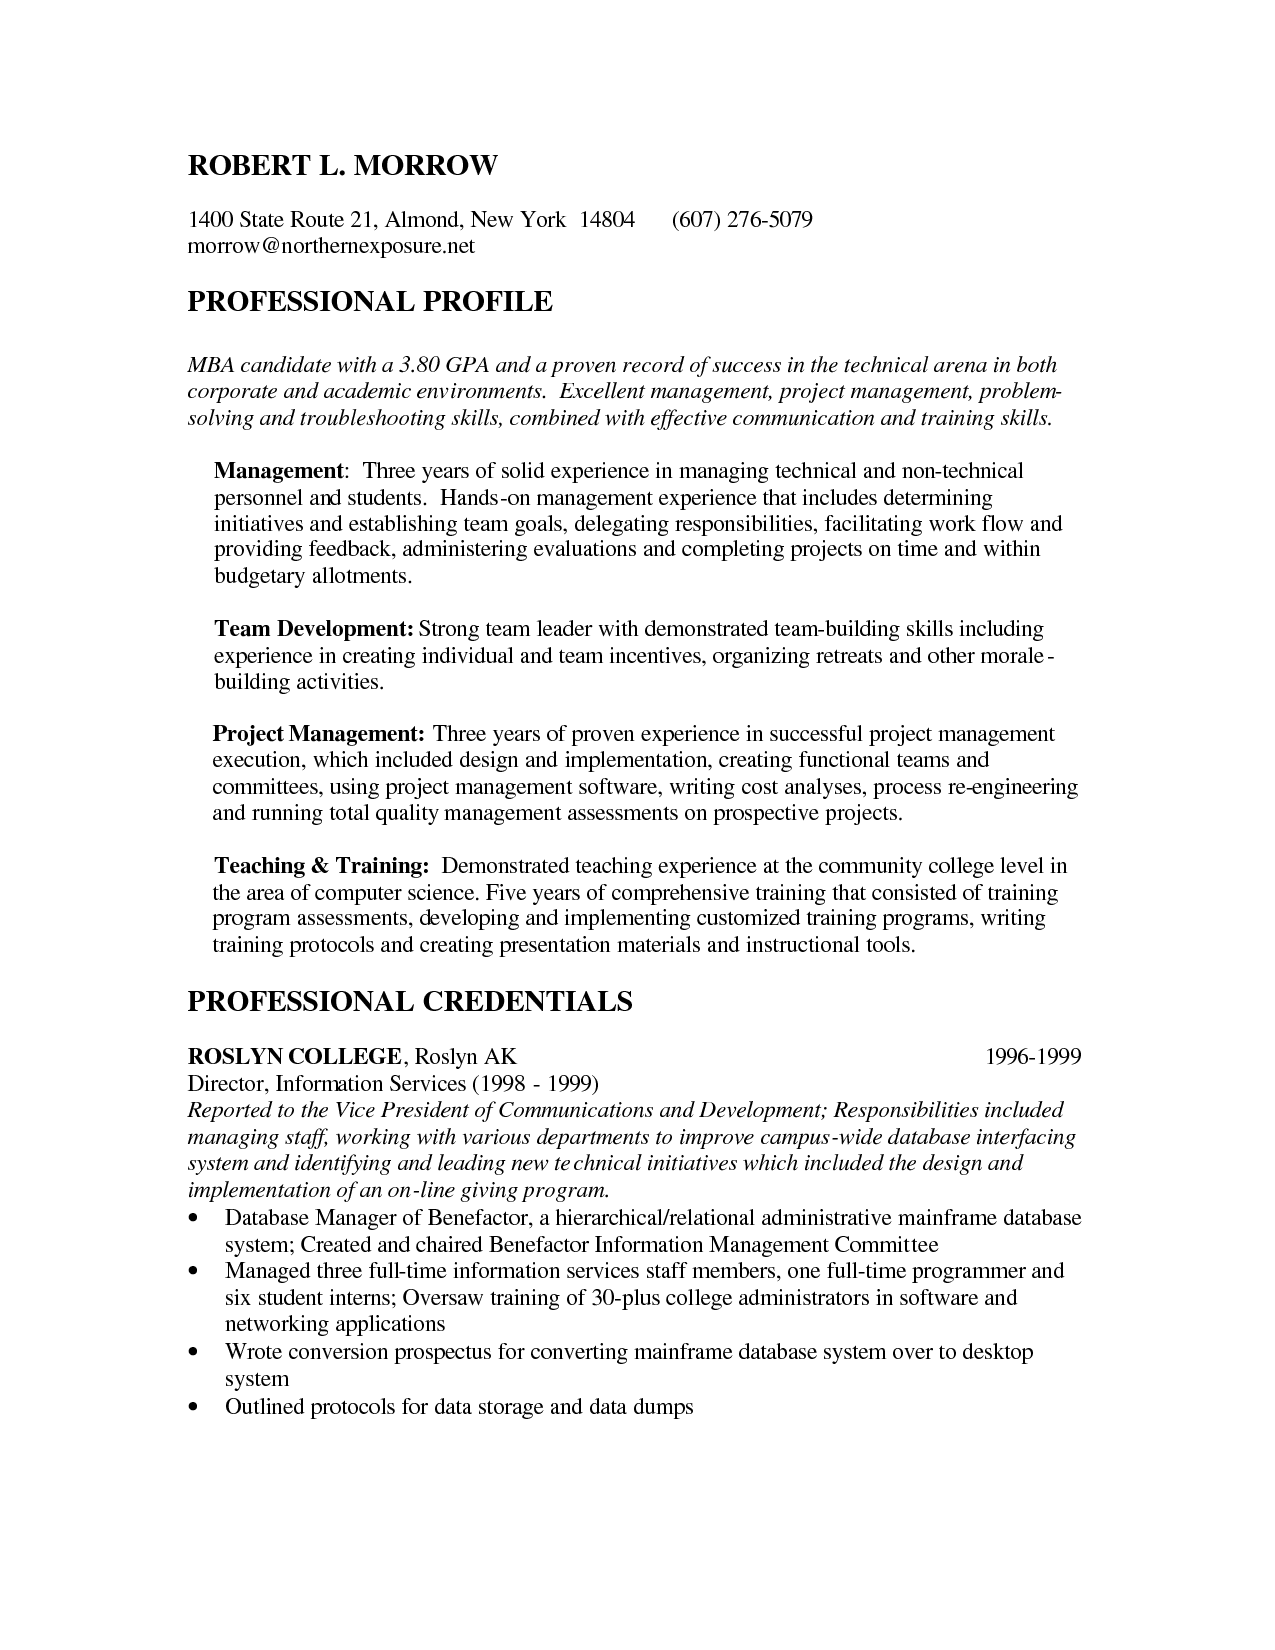 Pin by jobresume on Resume Career termplate free | Pinterest